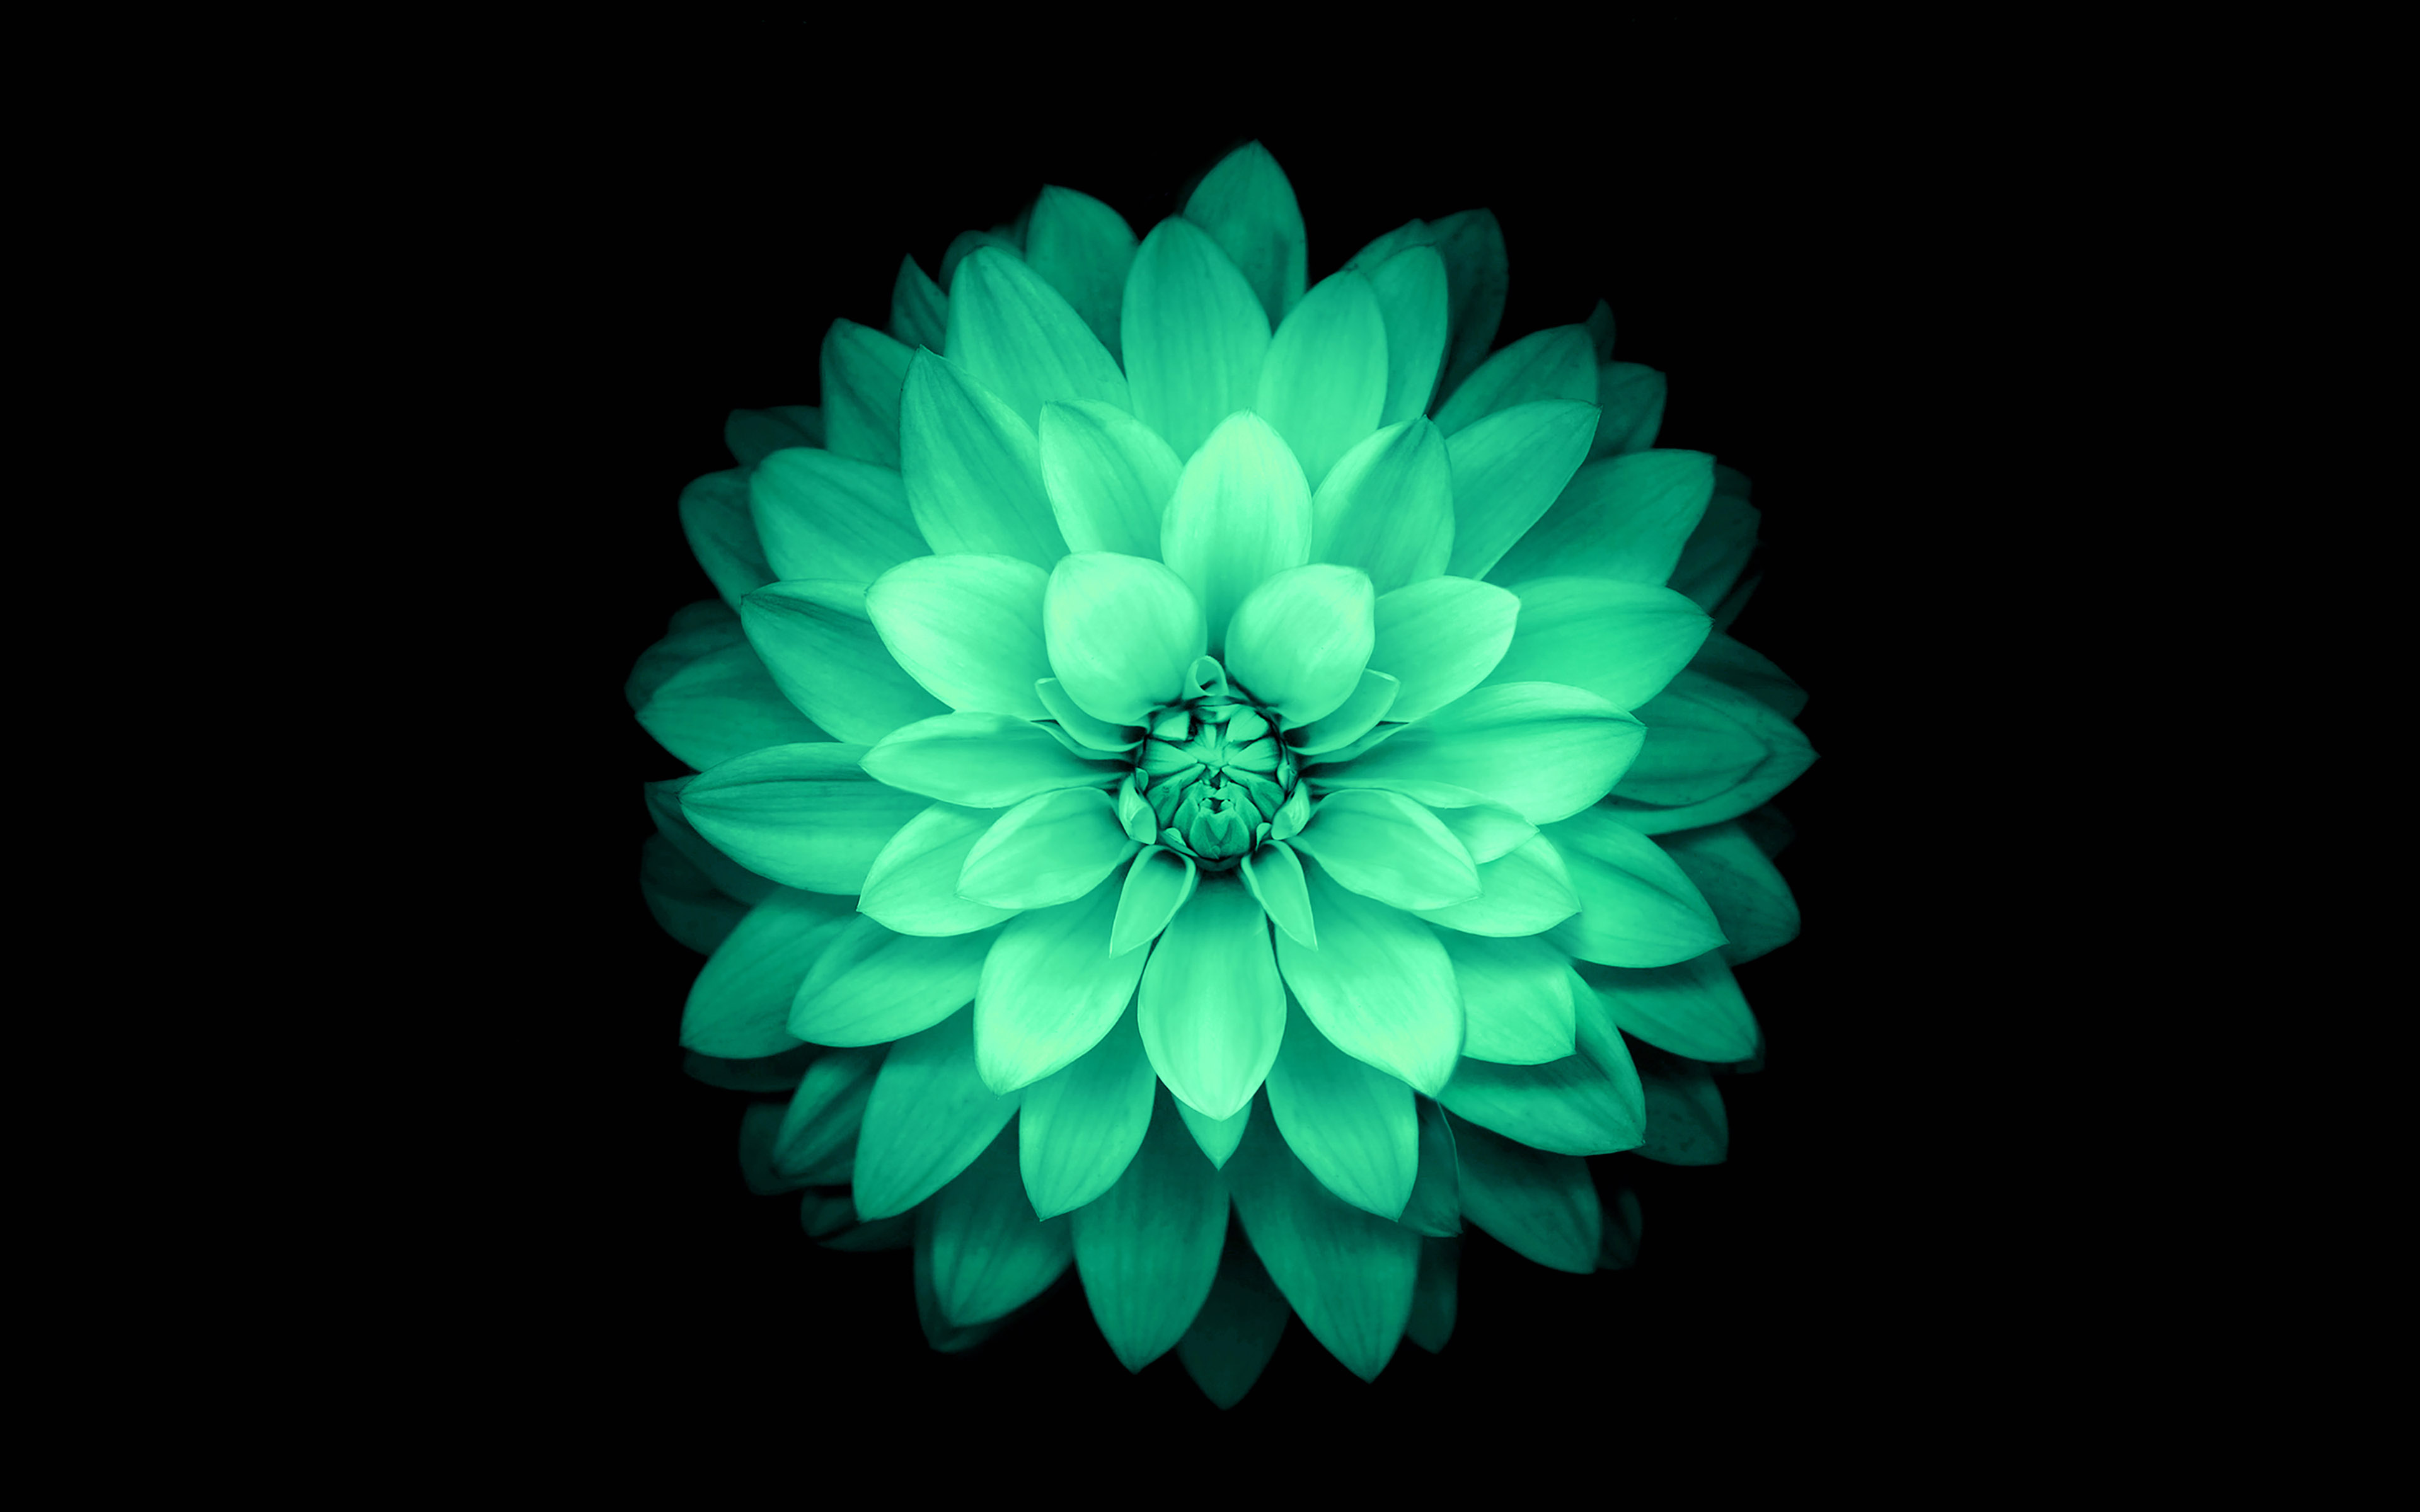 ad76-apple-green-lotus-iphone6-plus-ios8-flower - Papers.co